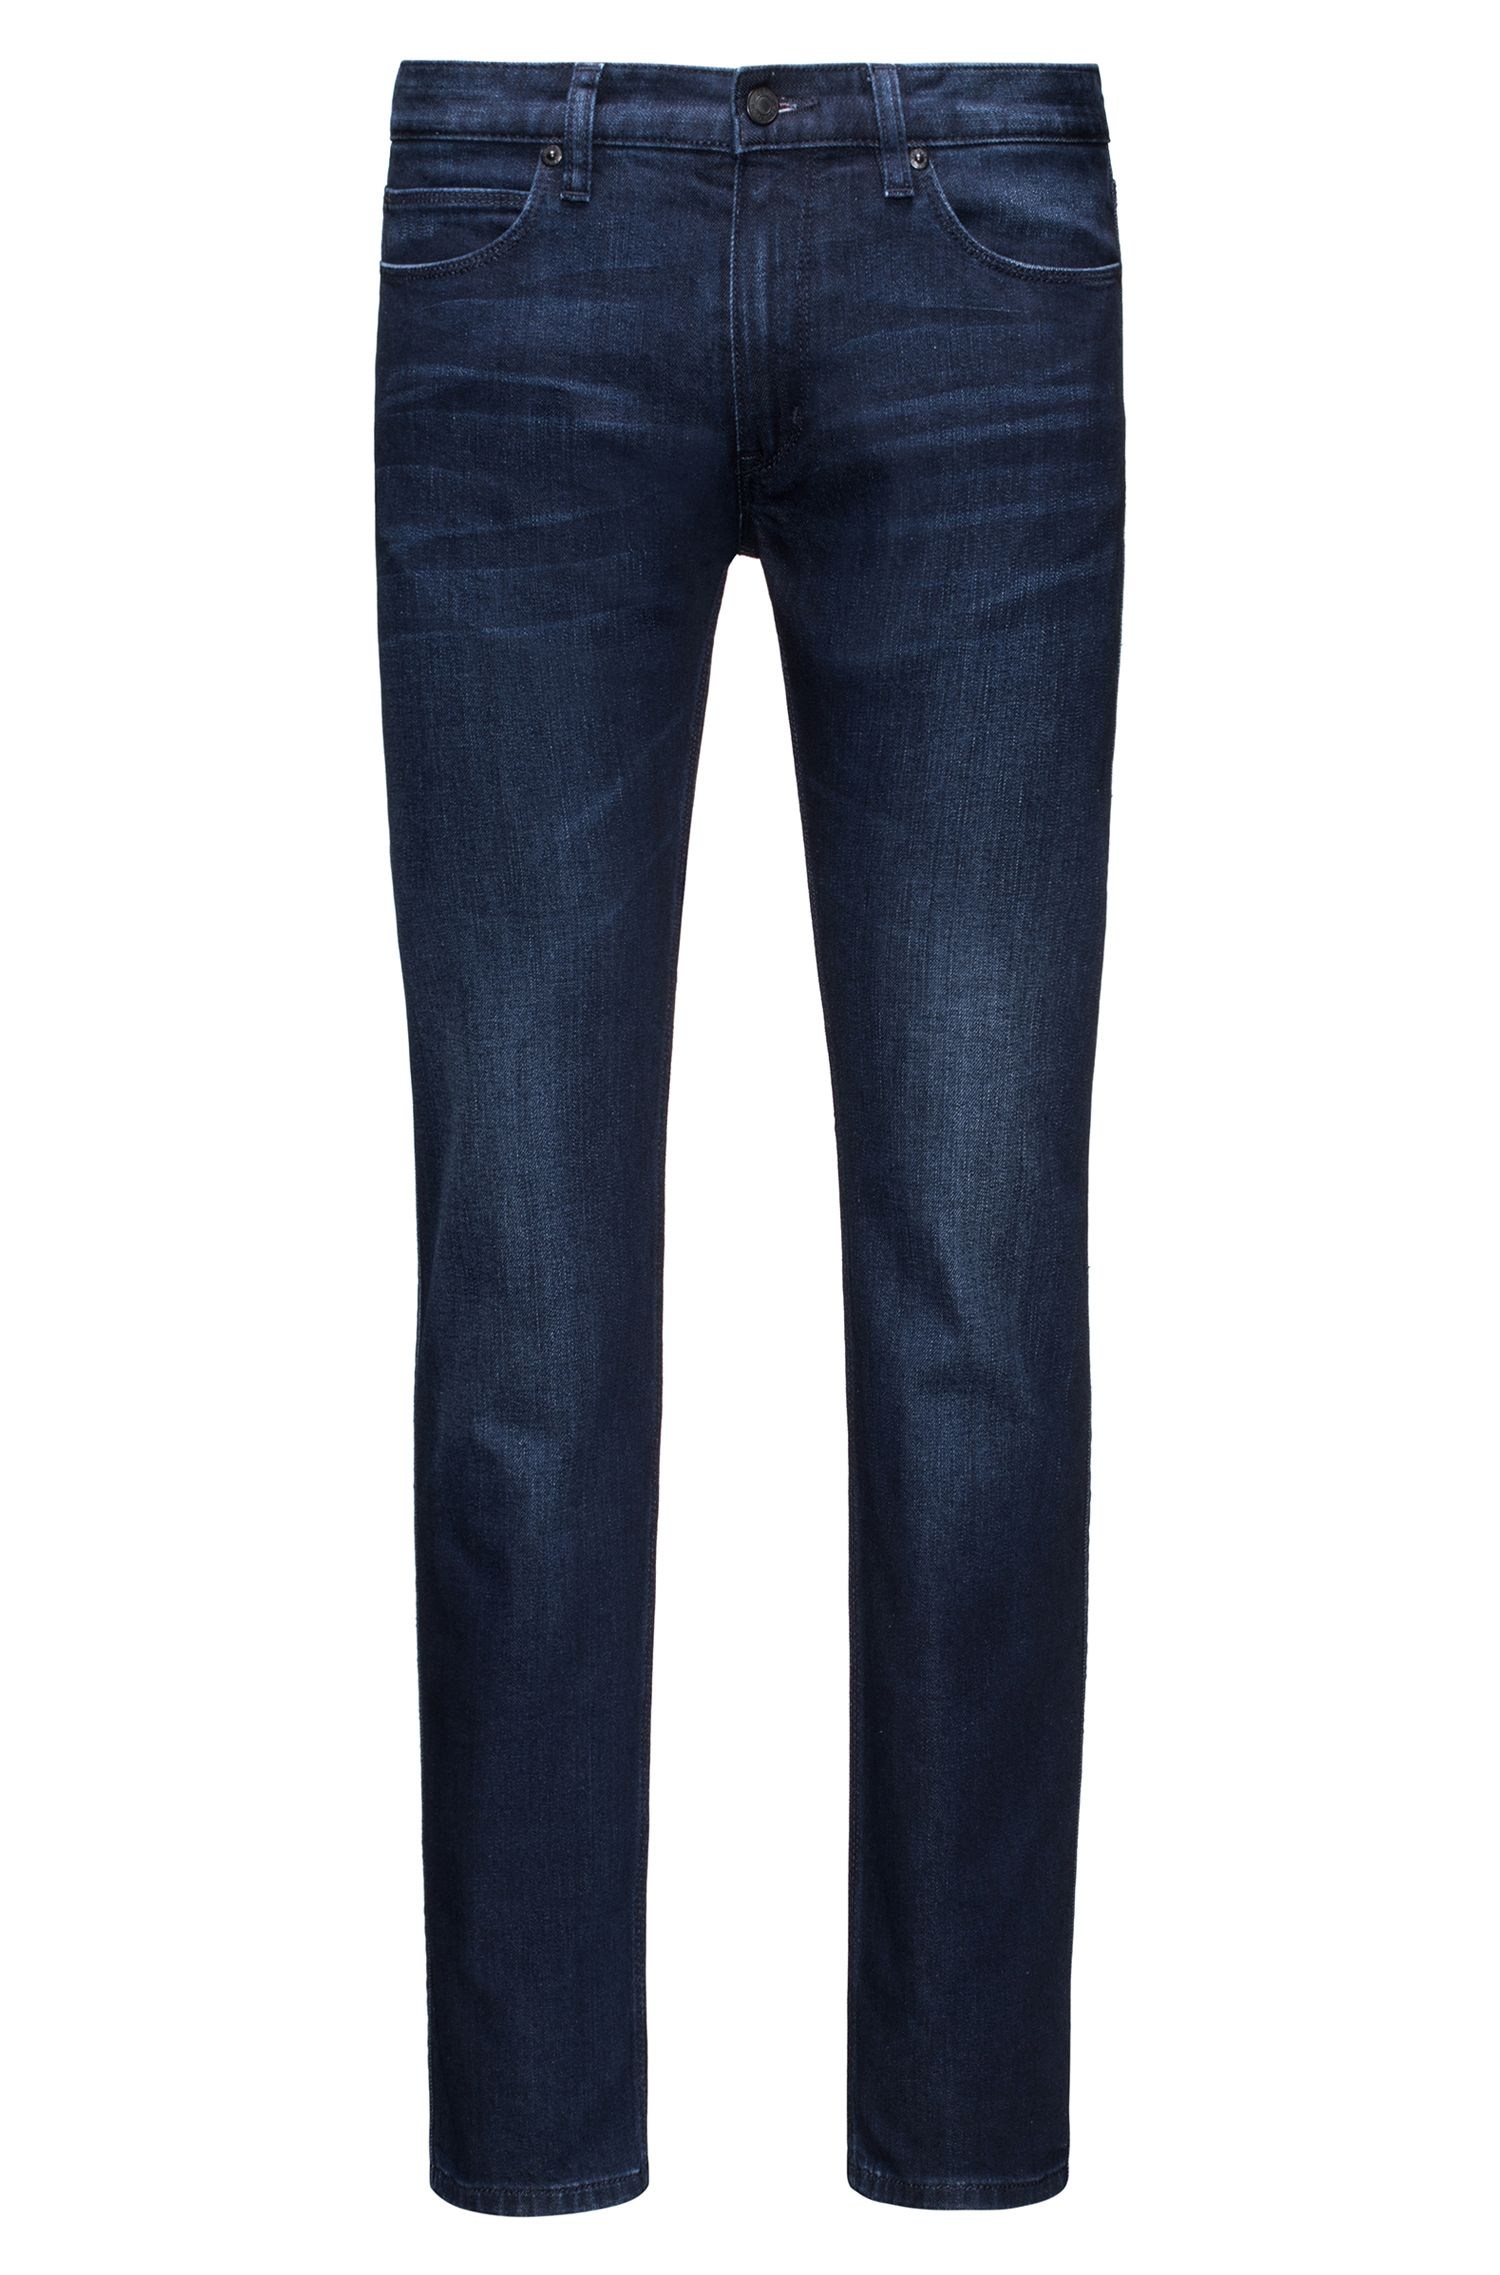 Jean Slim Fit stone-washed en denim stretch confortable